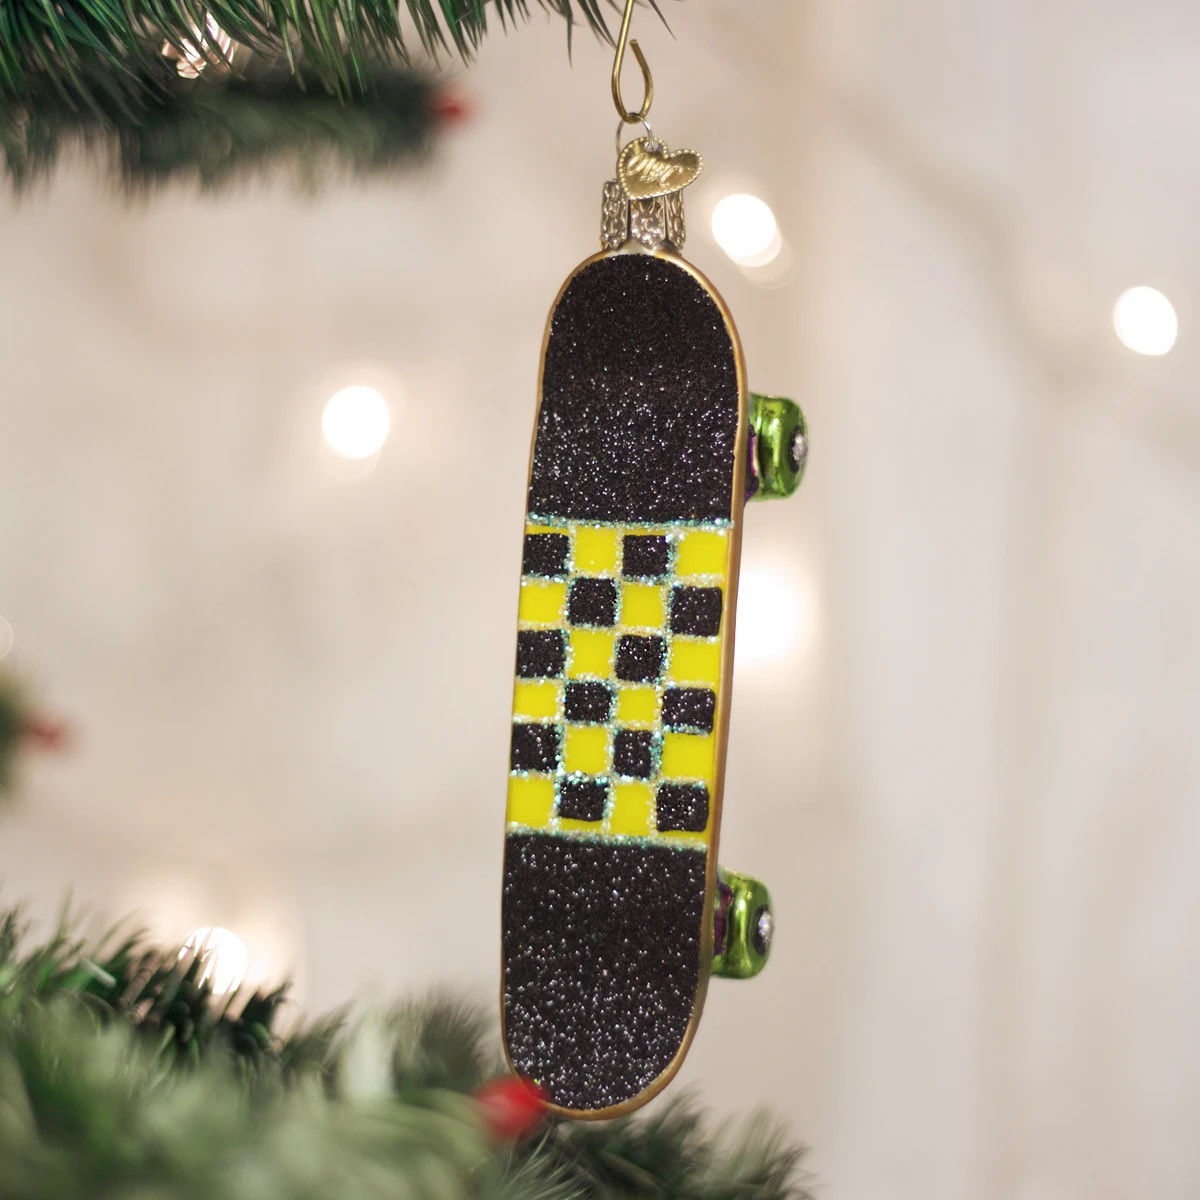 Skateboard Ornament by Old World Christmas